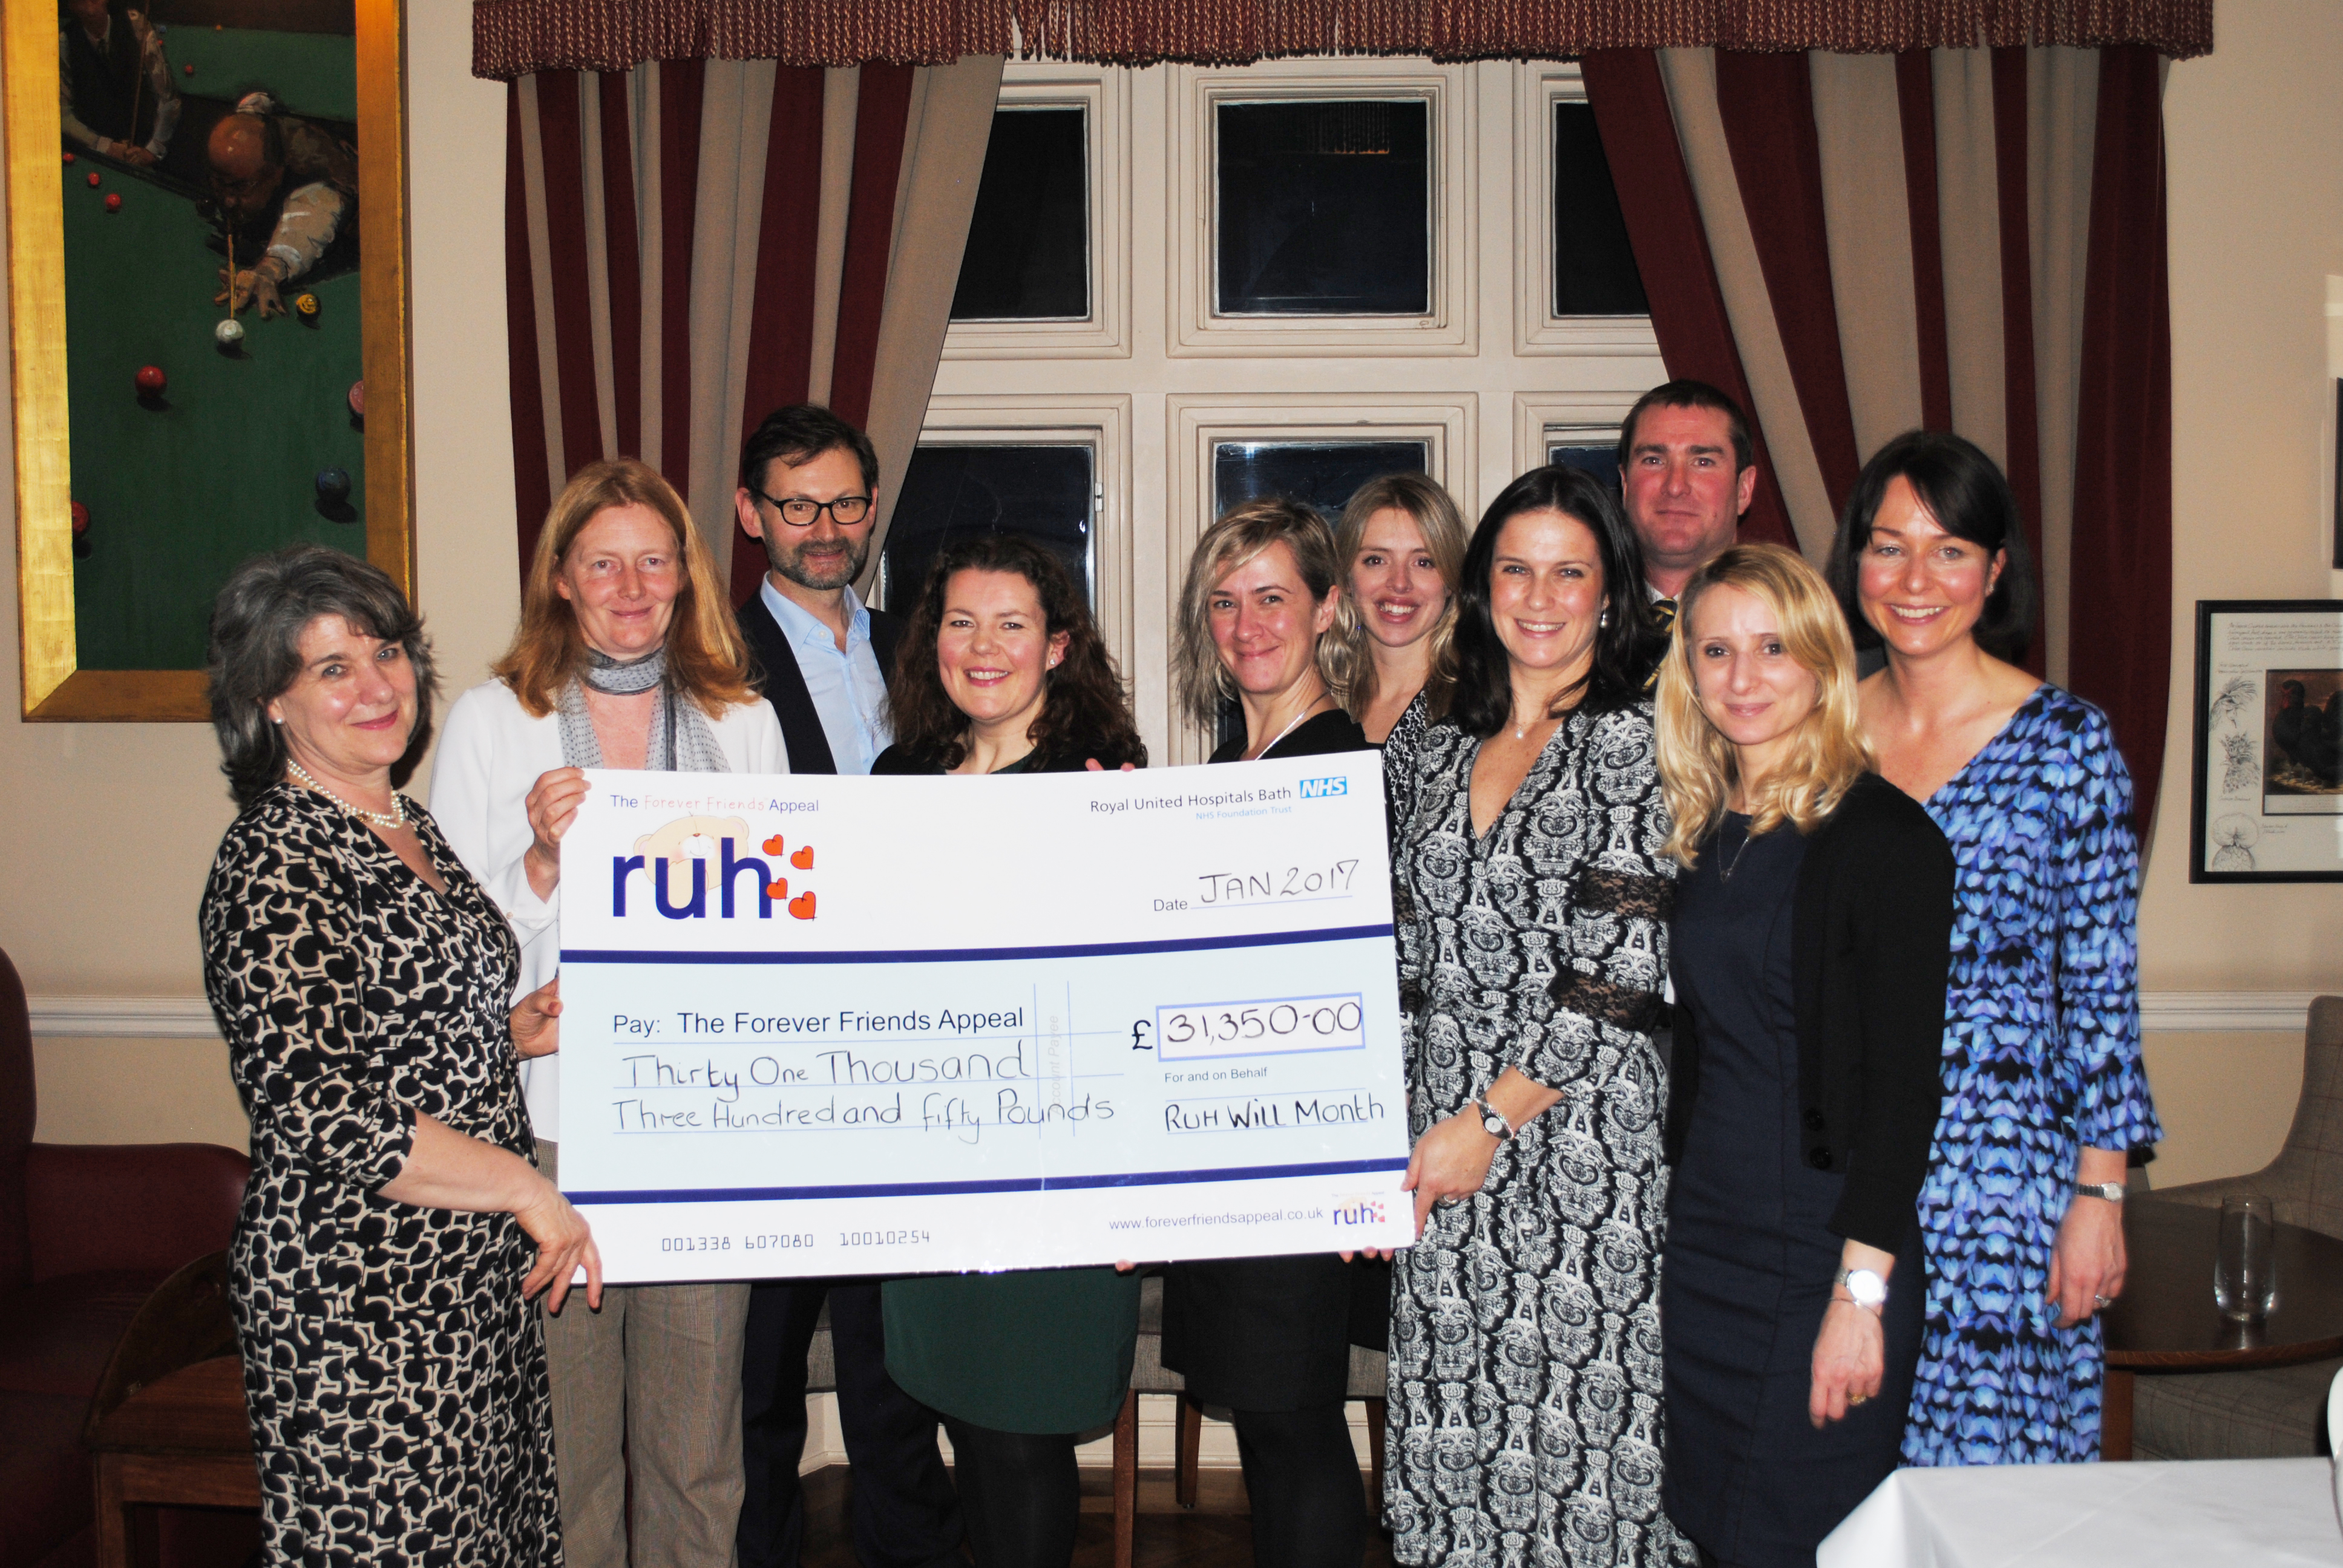 Local Solicitors raise £31,500 for the RUH Make a Will Month September